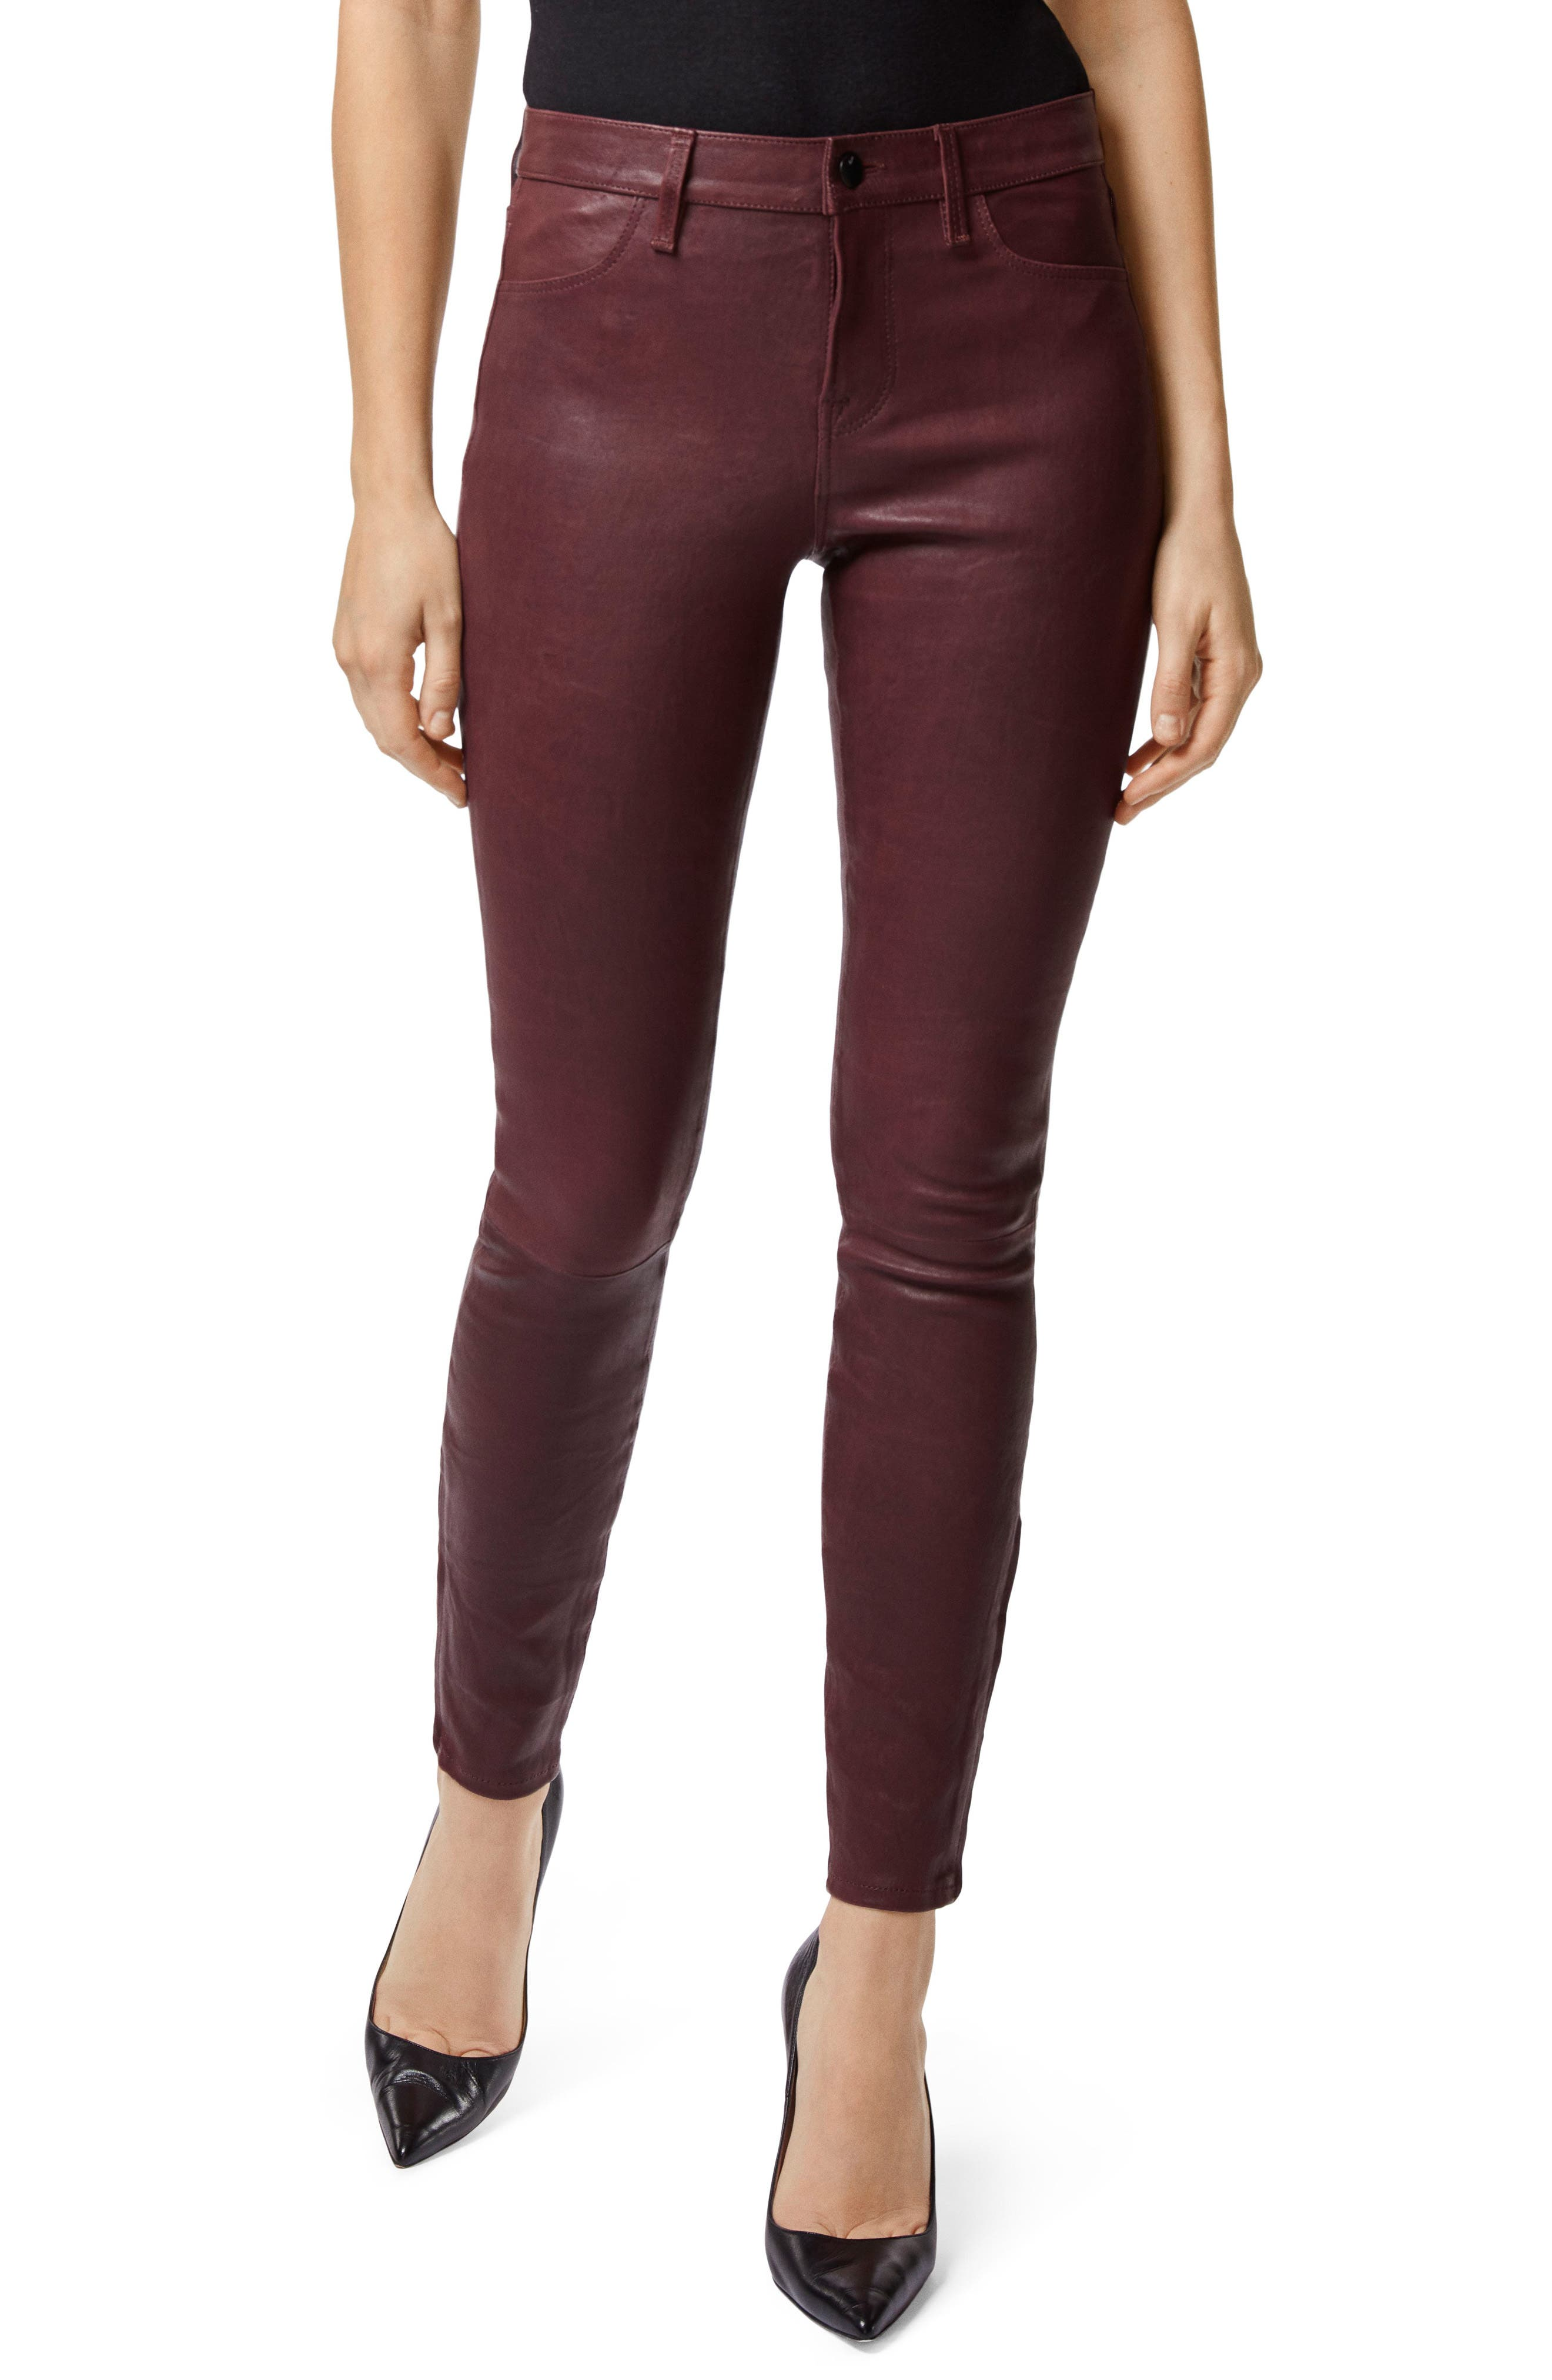 '8001' Lambskin Leather Pants,                             Main thumbnail 1, color,                             510